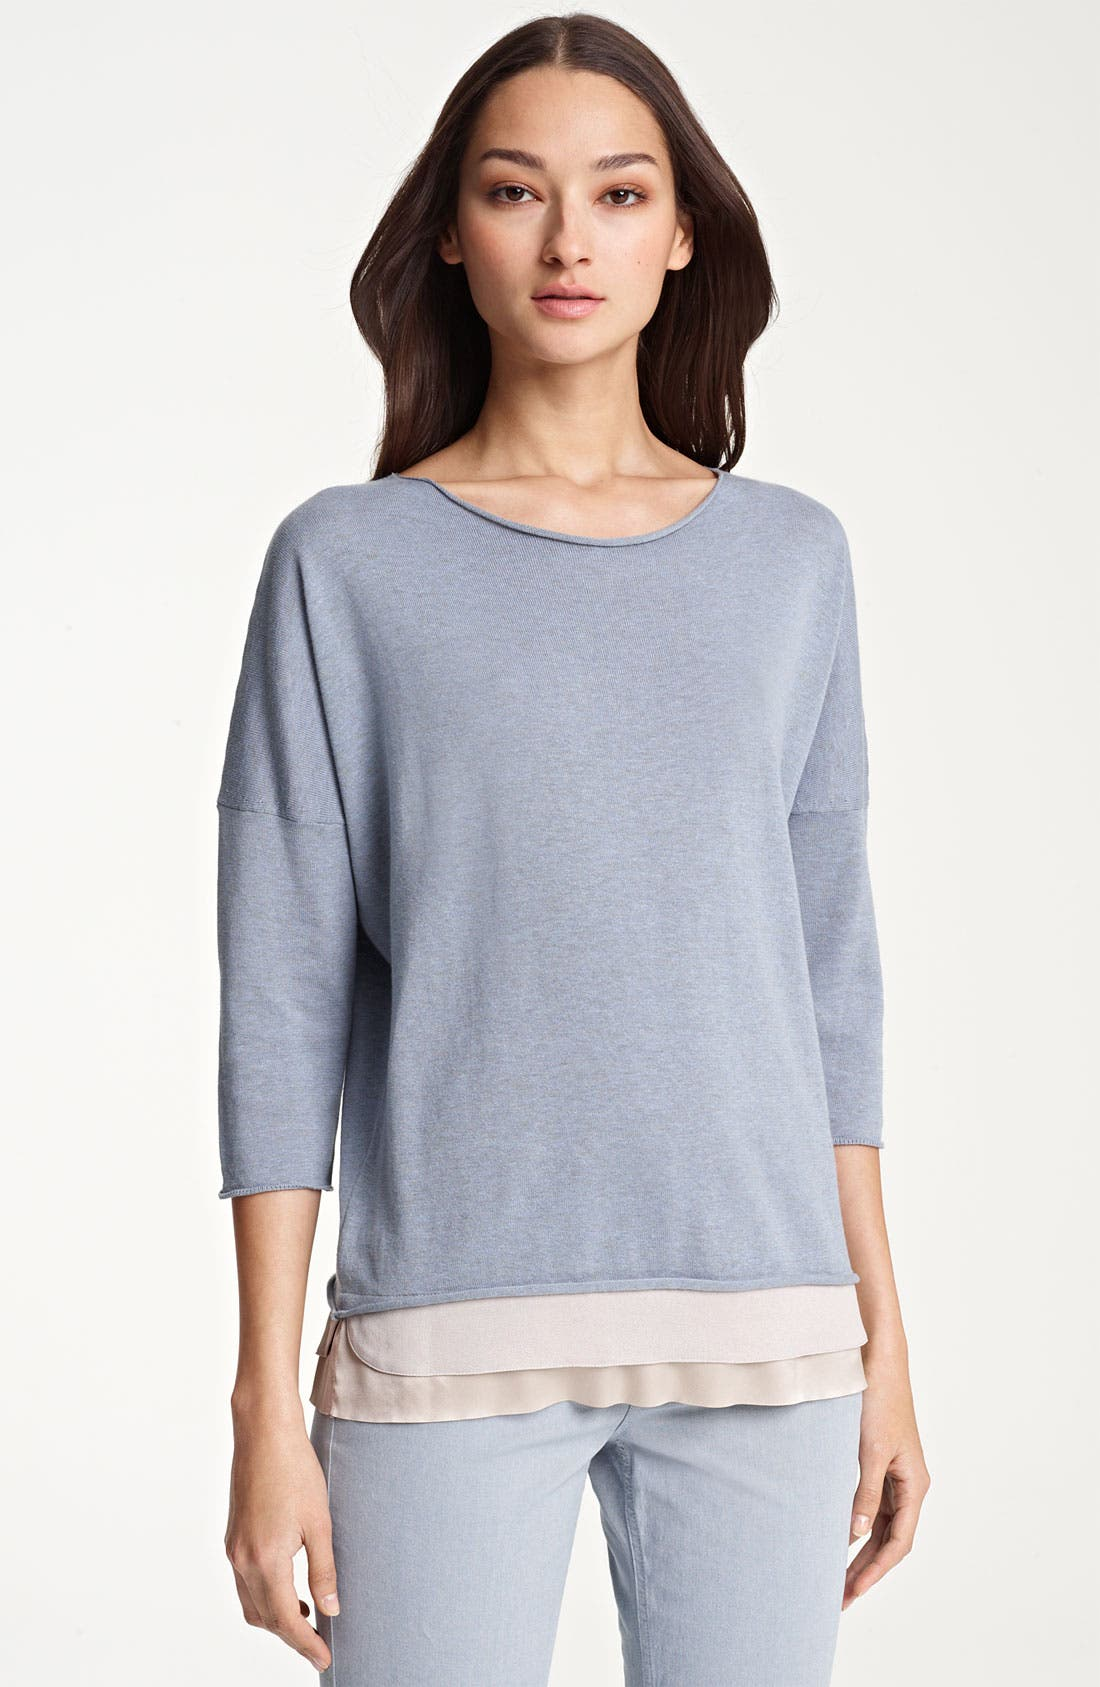 Main Image - Fabiana Filippi Crepe Hem Knit Top